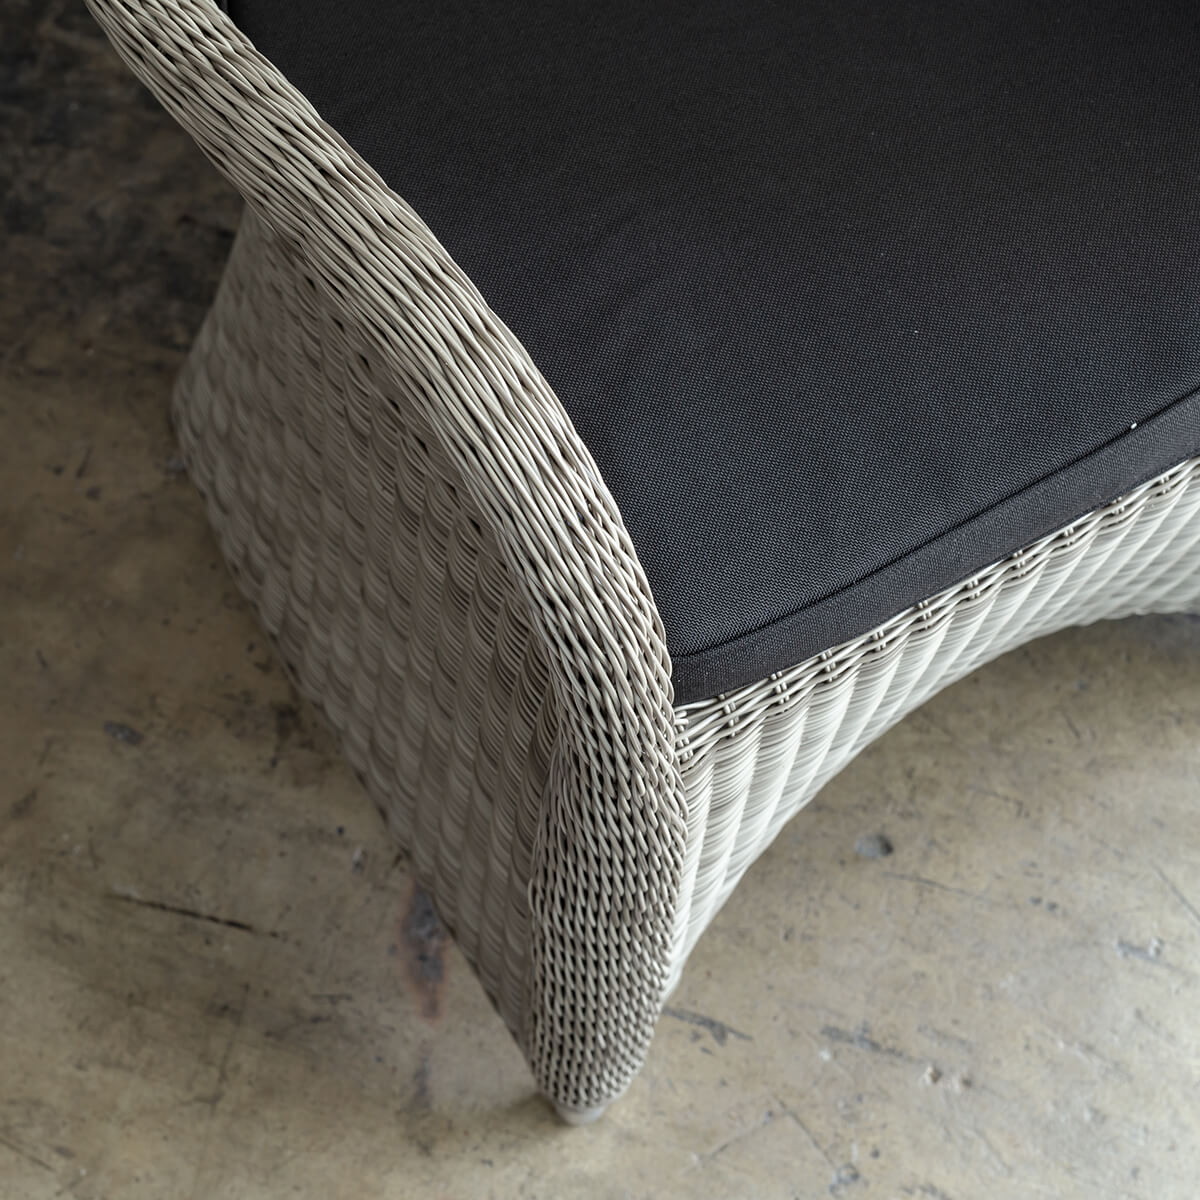 LECCO HAMPTON INSPIRED RATTAN WOVEN VERONA CHAIR  |  COOL GREY WICKER